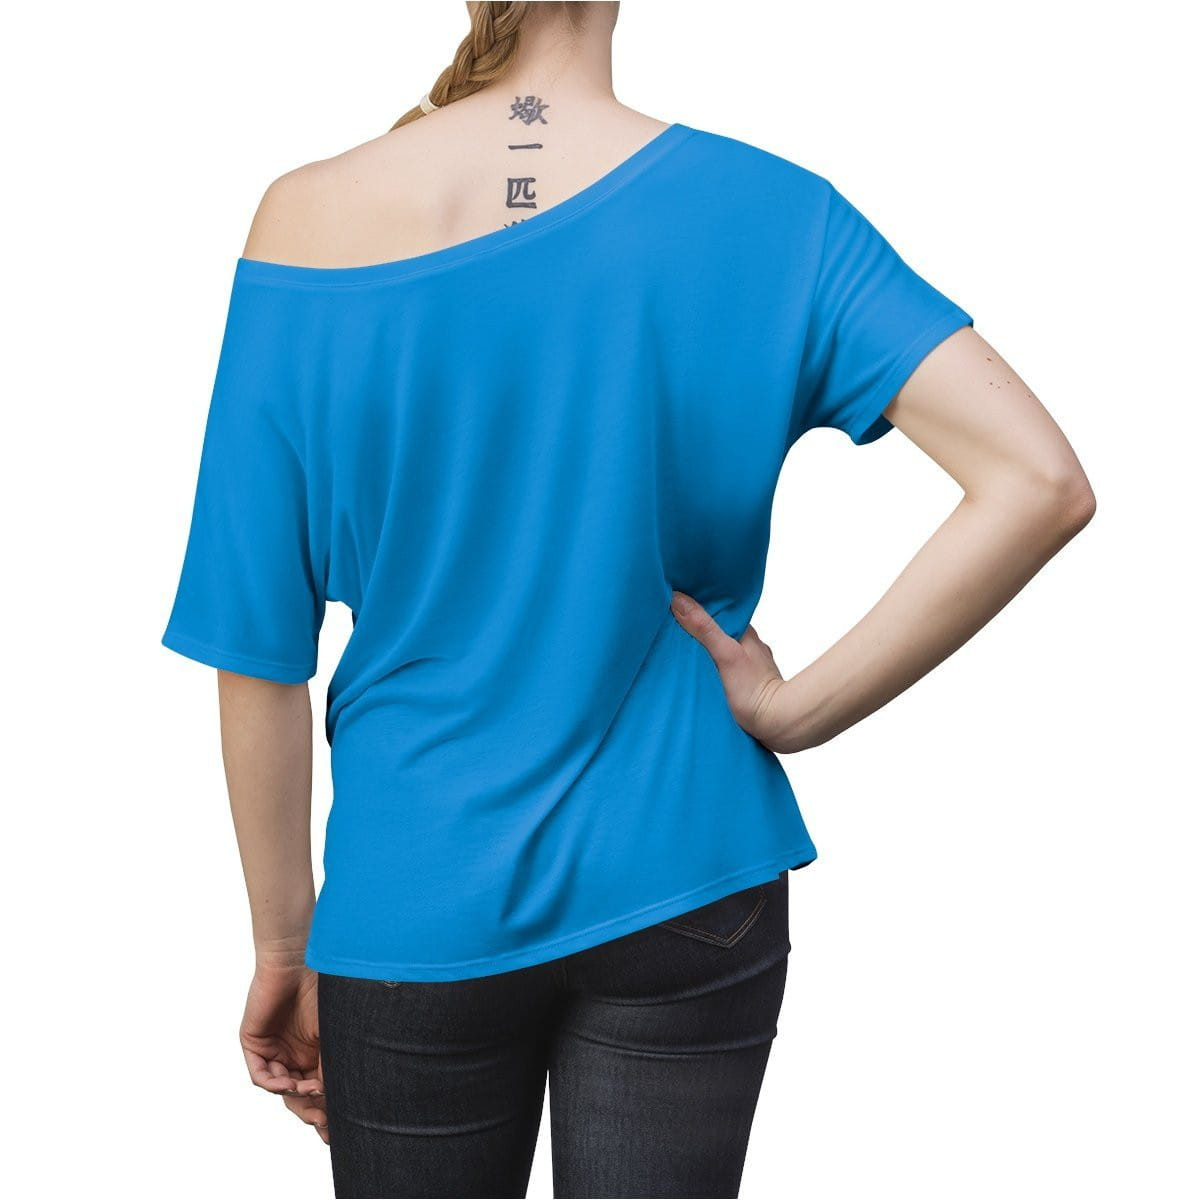 Fiercely Fem Women's Slouchy top - Fiercely Fem